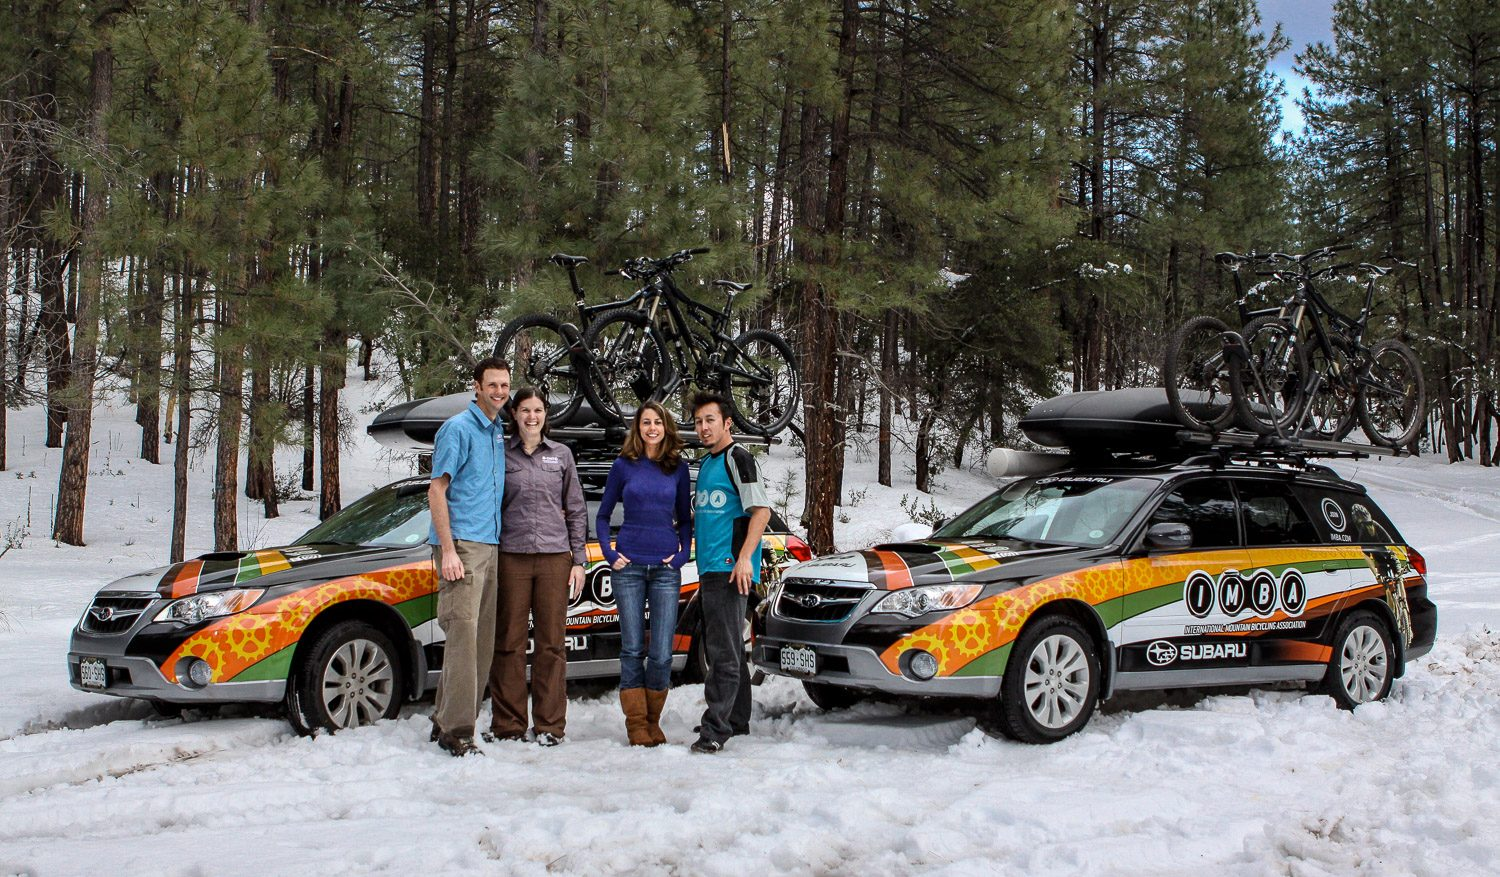 On the Road With the Subaru/ IMBA Trail Care Crews